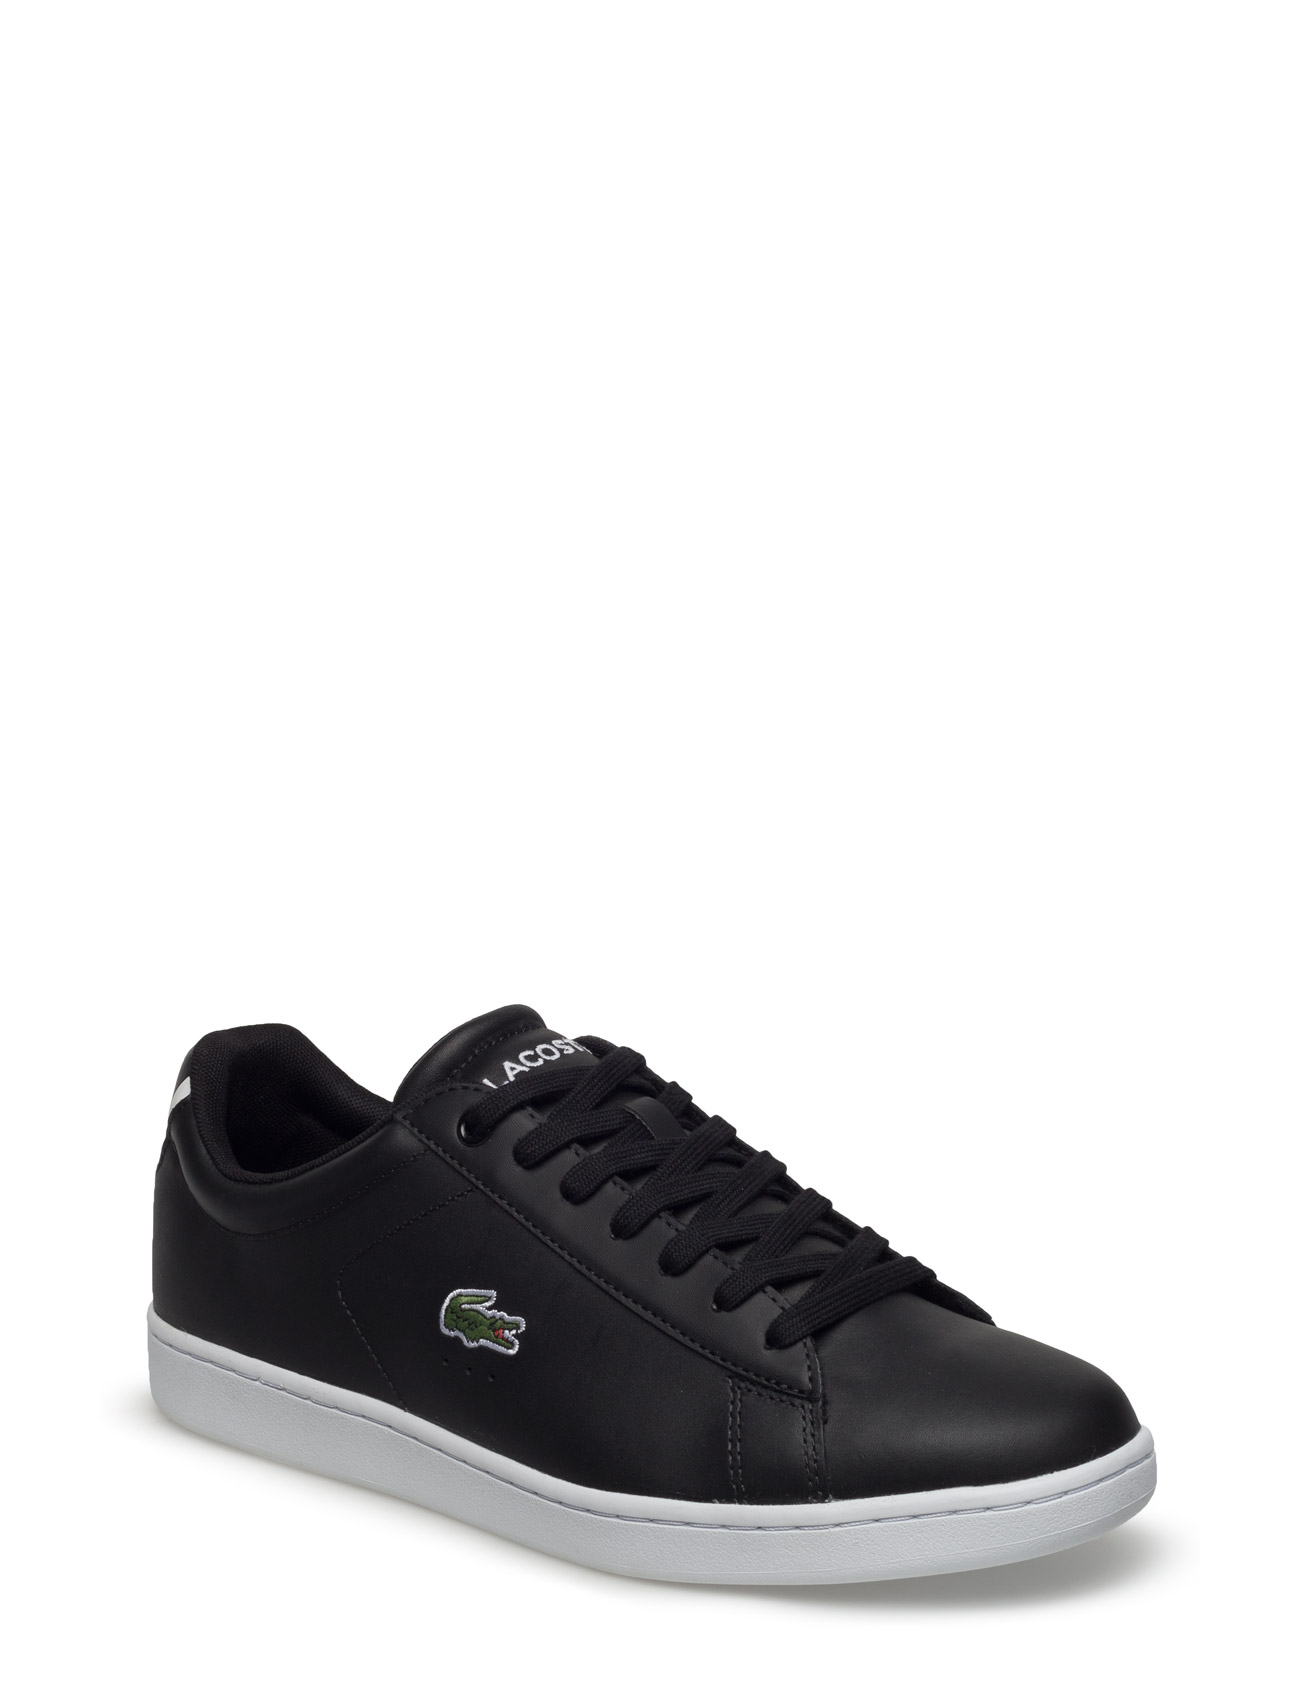 lacoste shoes Carnaby evo bl 1 fra boozt.com dk